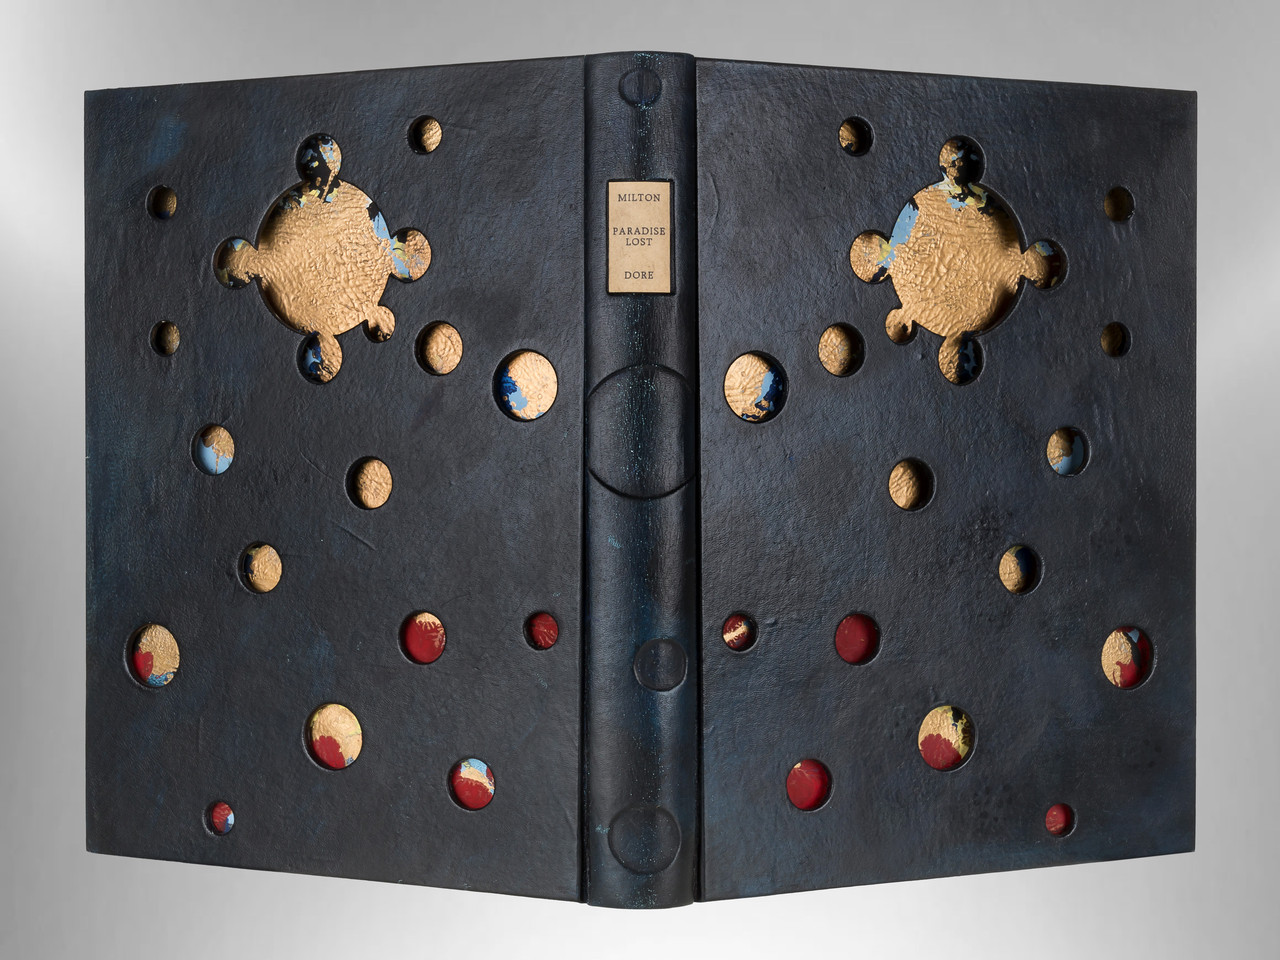 Paradise Lost Illustrated by Gustave Dore, Unique Binding by Richard Tuttle